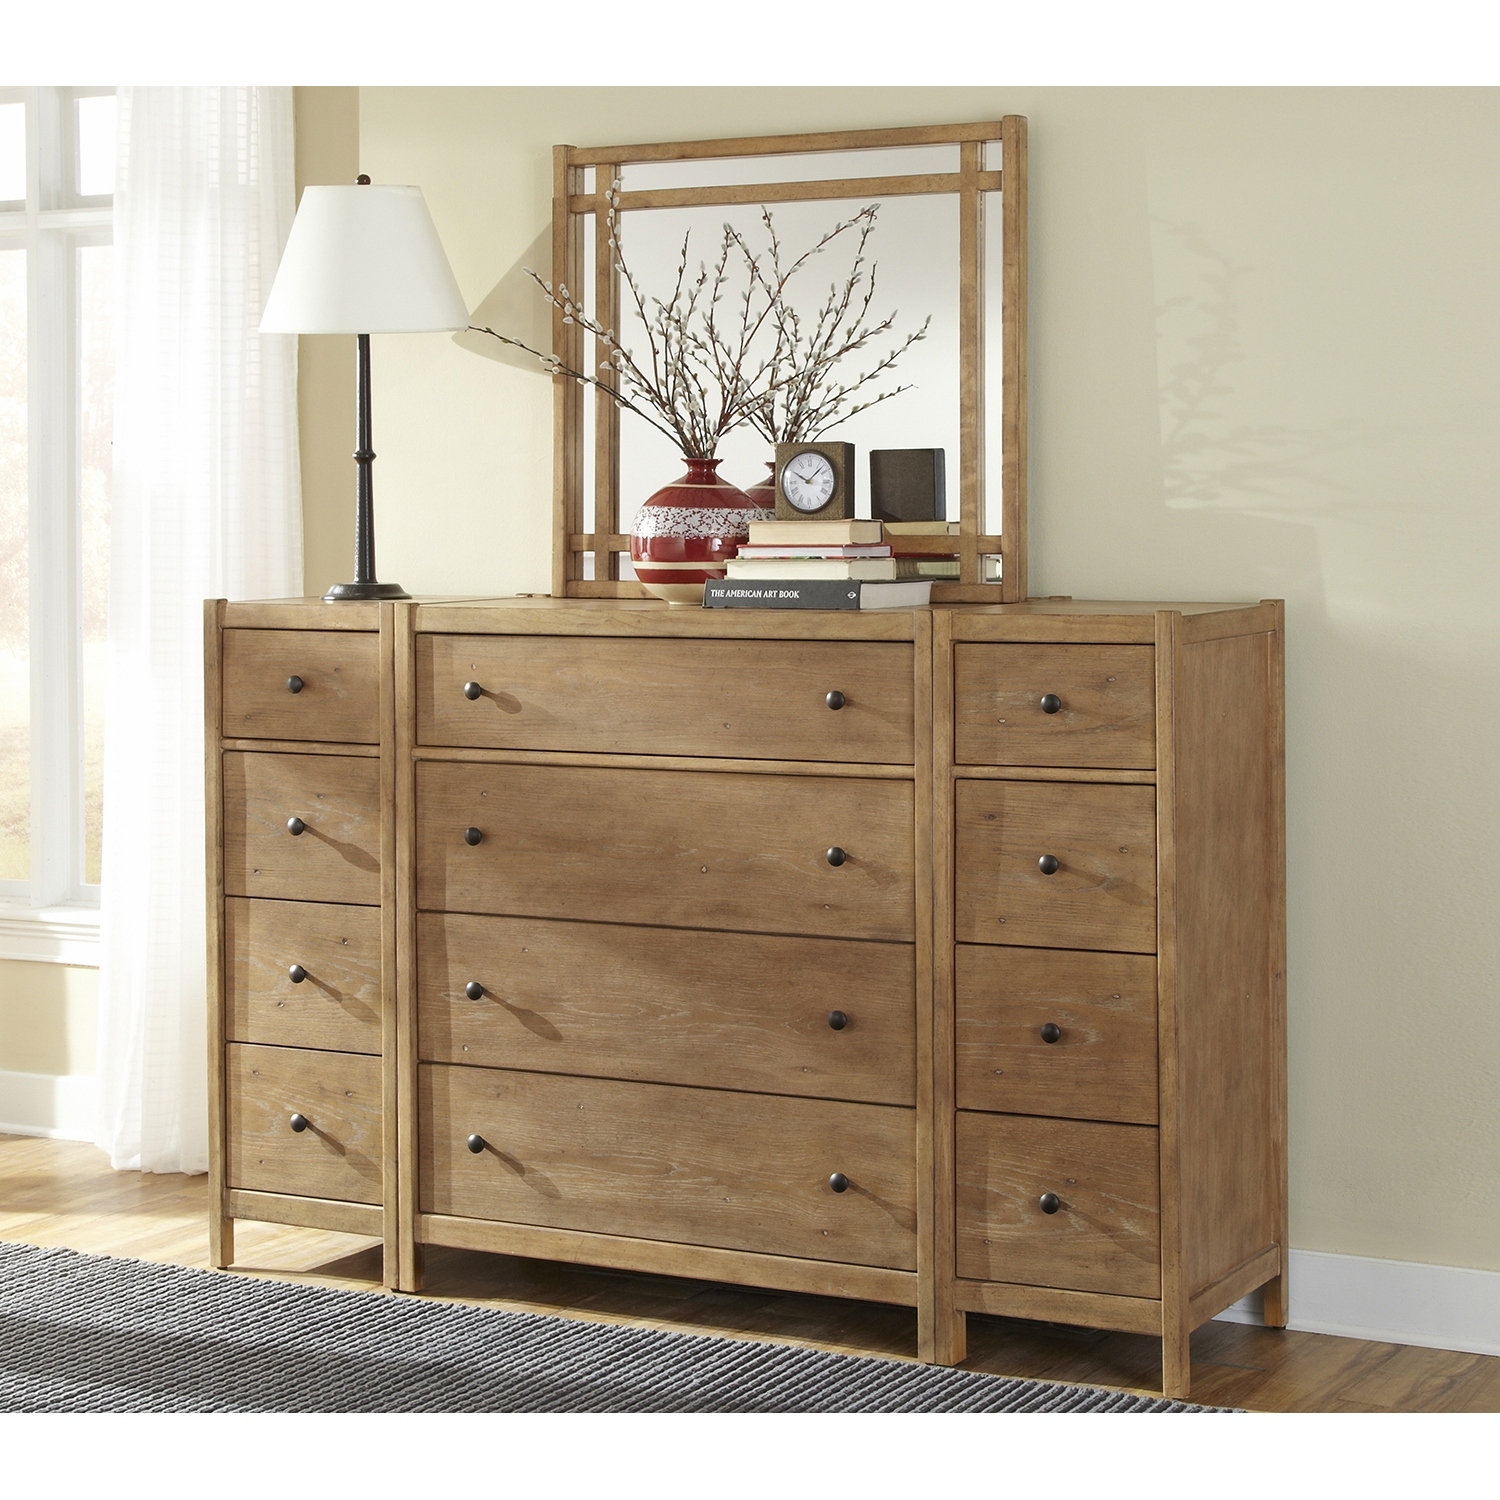 Natural Elements 4 Drawers Chest in Soft Driftwood with Off-White Glaze - AW-1000-140